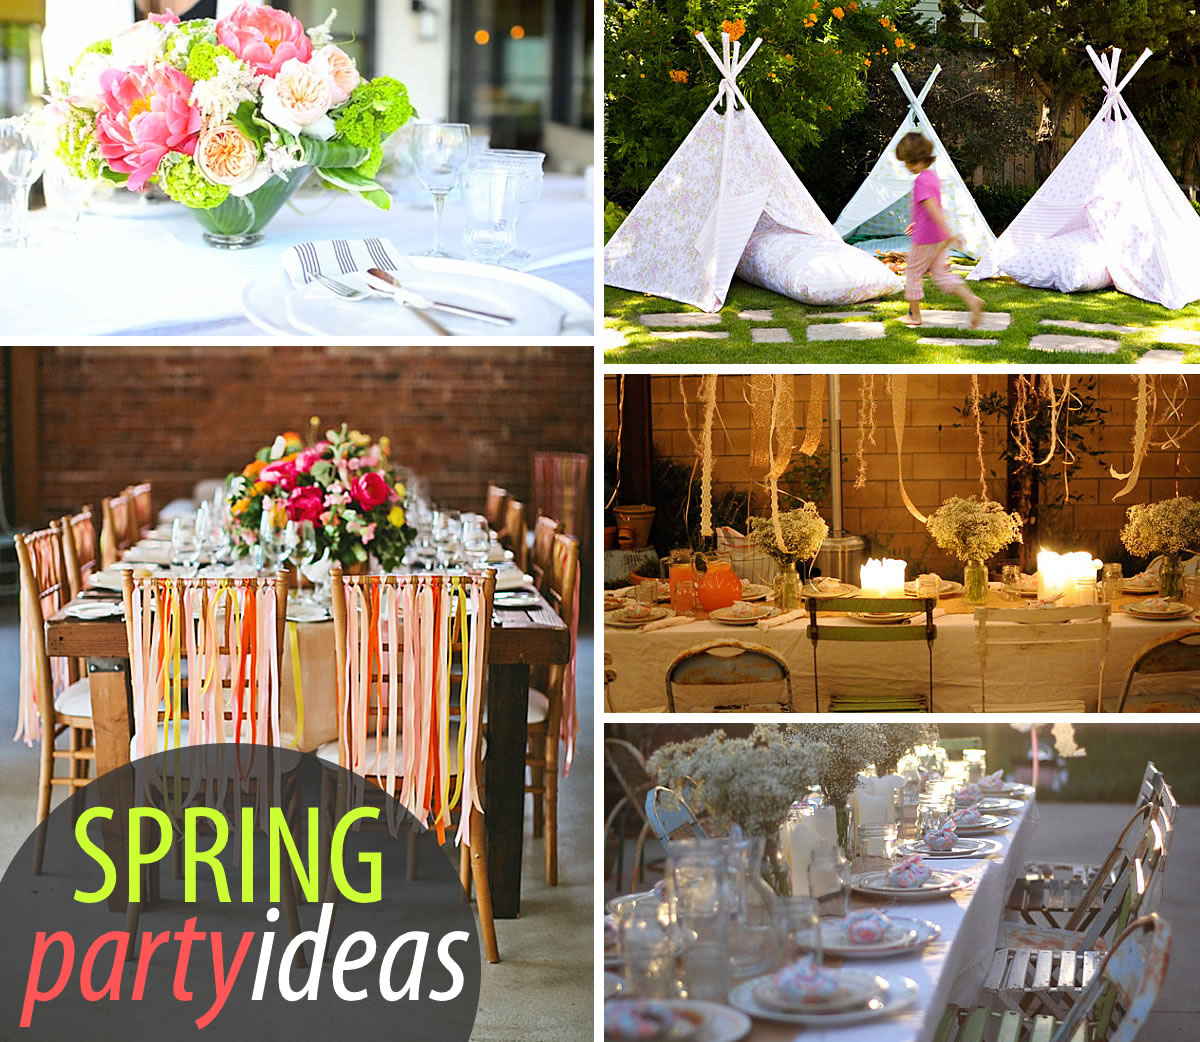 Spring Design Ideas: 20 Colorful Spring Party Ideas